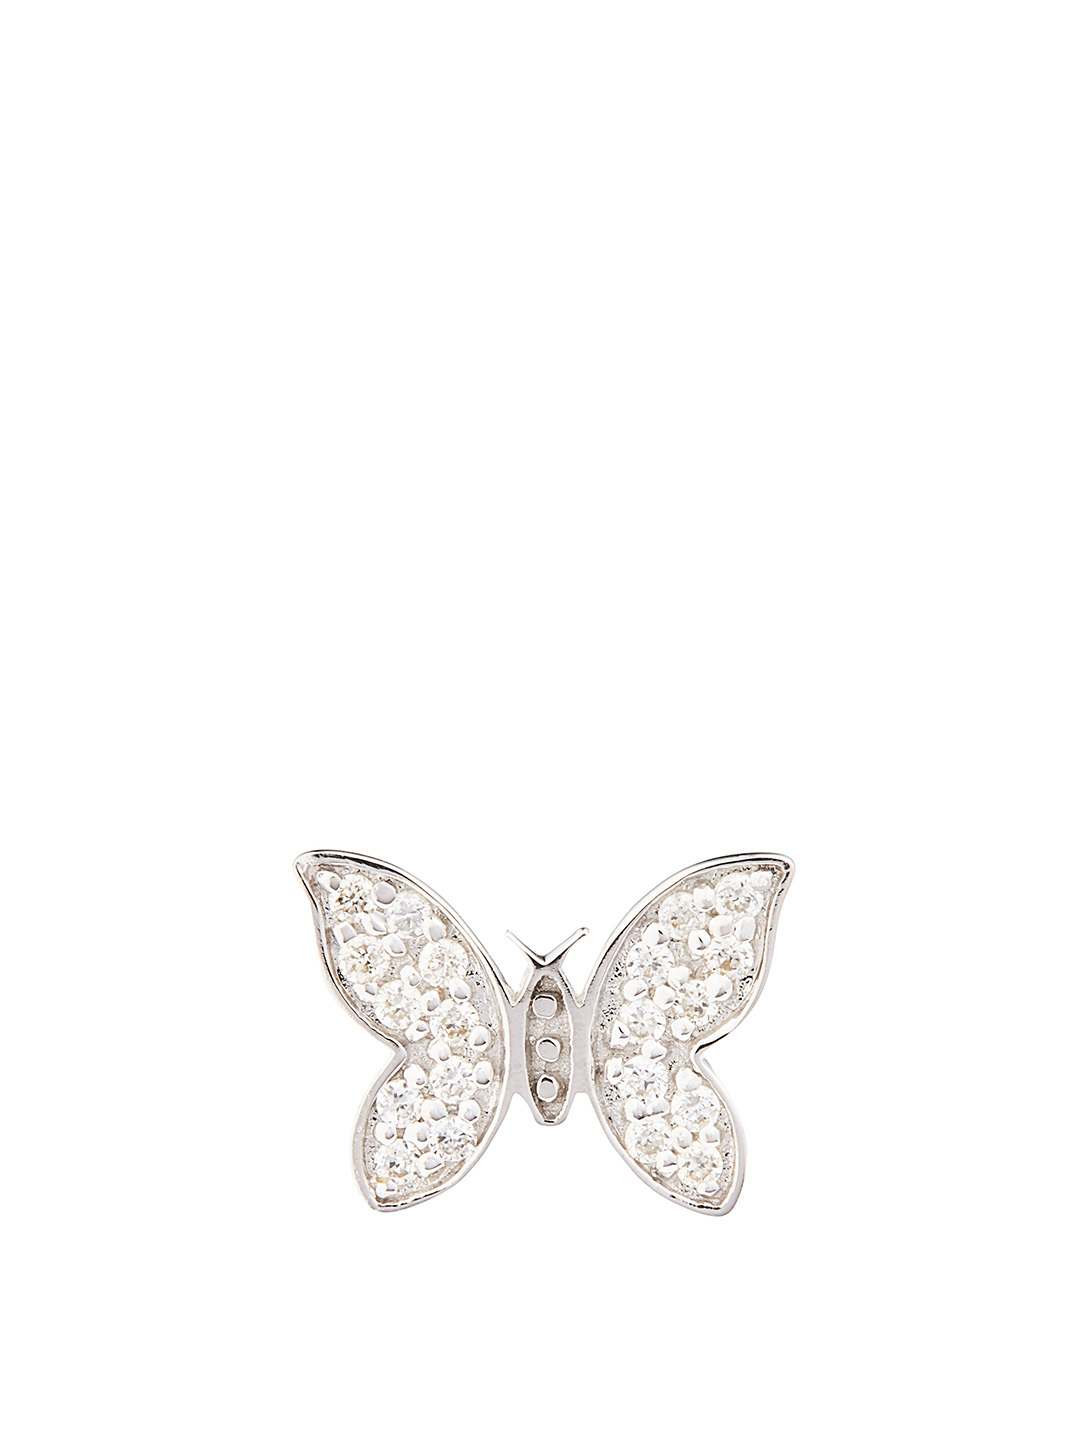 SYDNEY EVAN 14K White Gold Butterfly Earring With Diamonds Women's Metallic